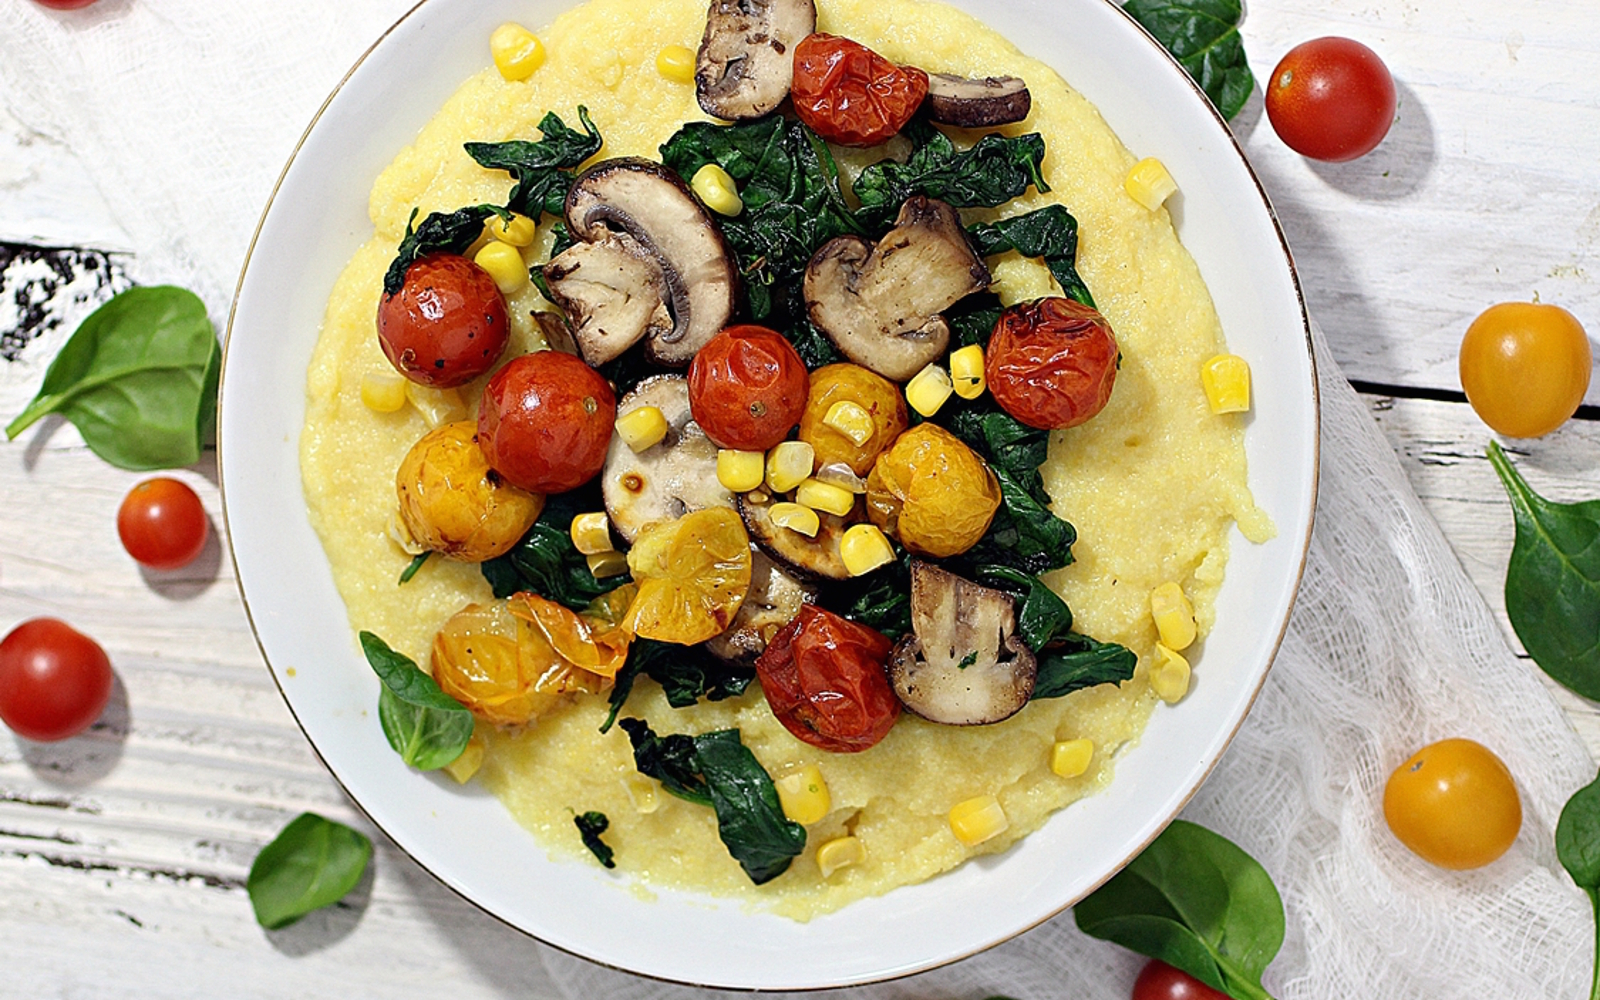 Creamy Polenta With Roasted Cherry Tomatoes, Mushrooms, and Spinach